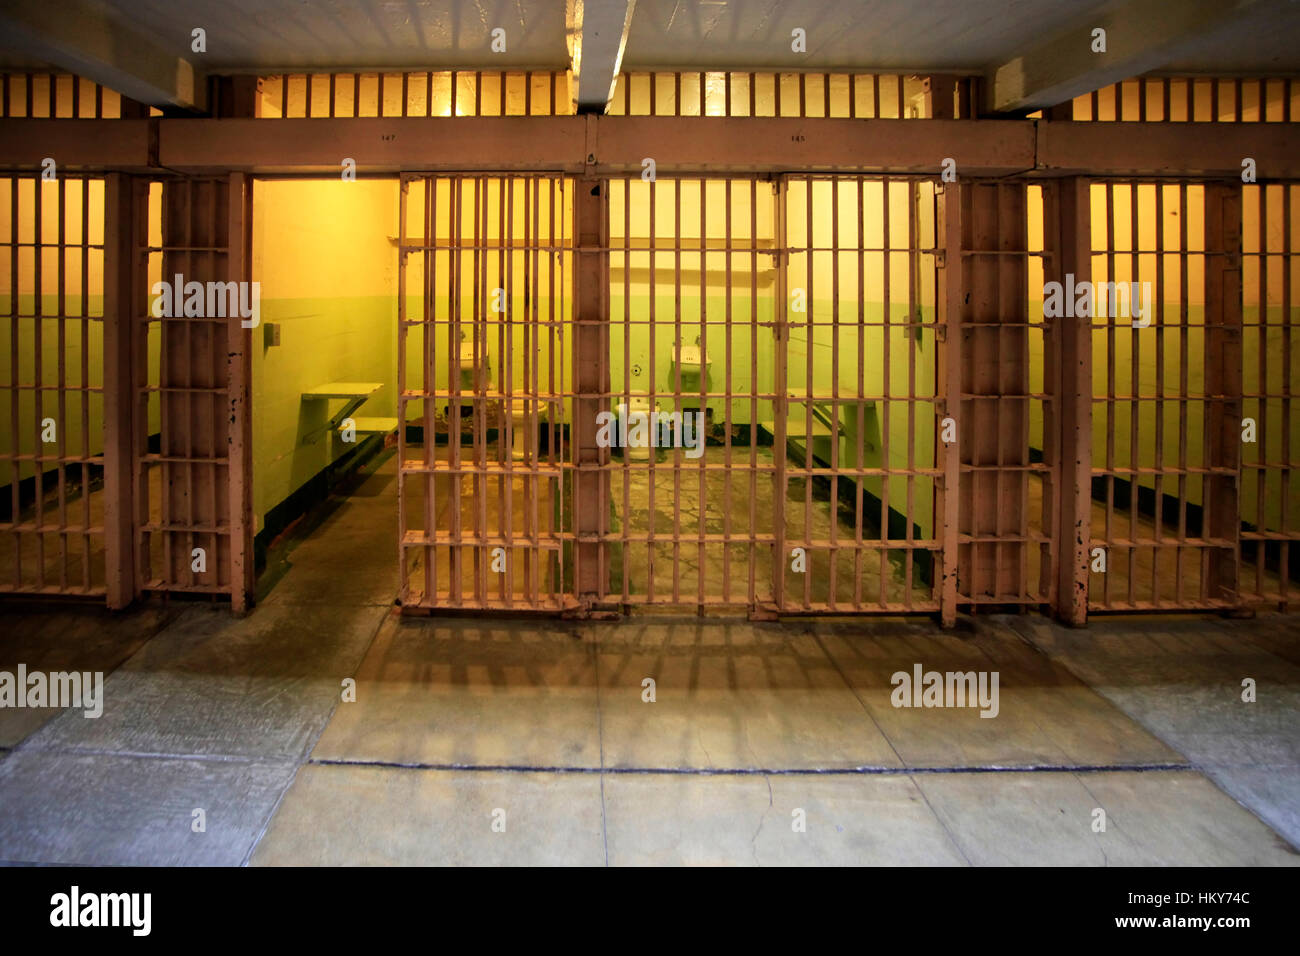 Jail Inside View Stock Photos & Jail Inside View Stock Images - Alamy